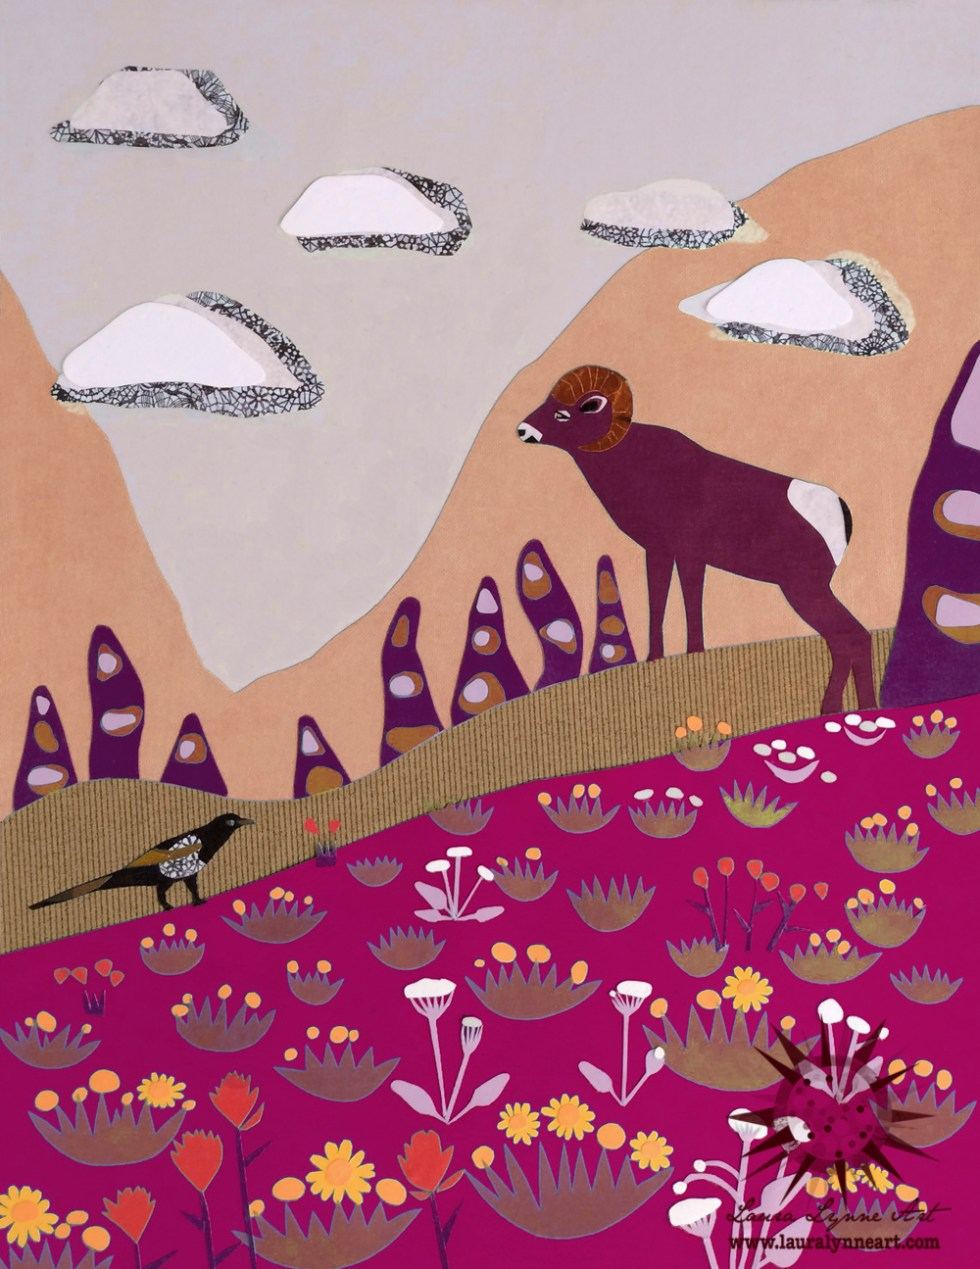 Ram and magpie in the mountains with wildflowers